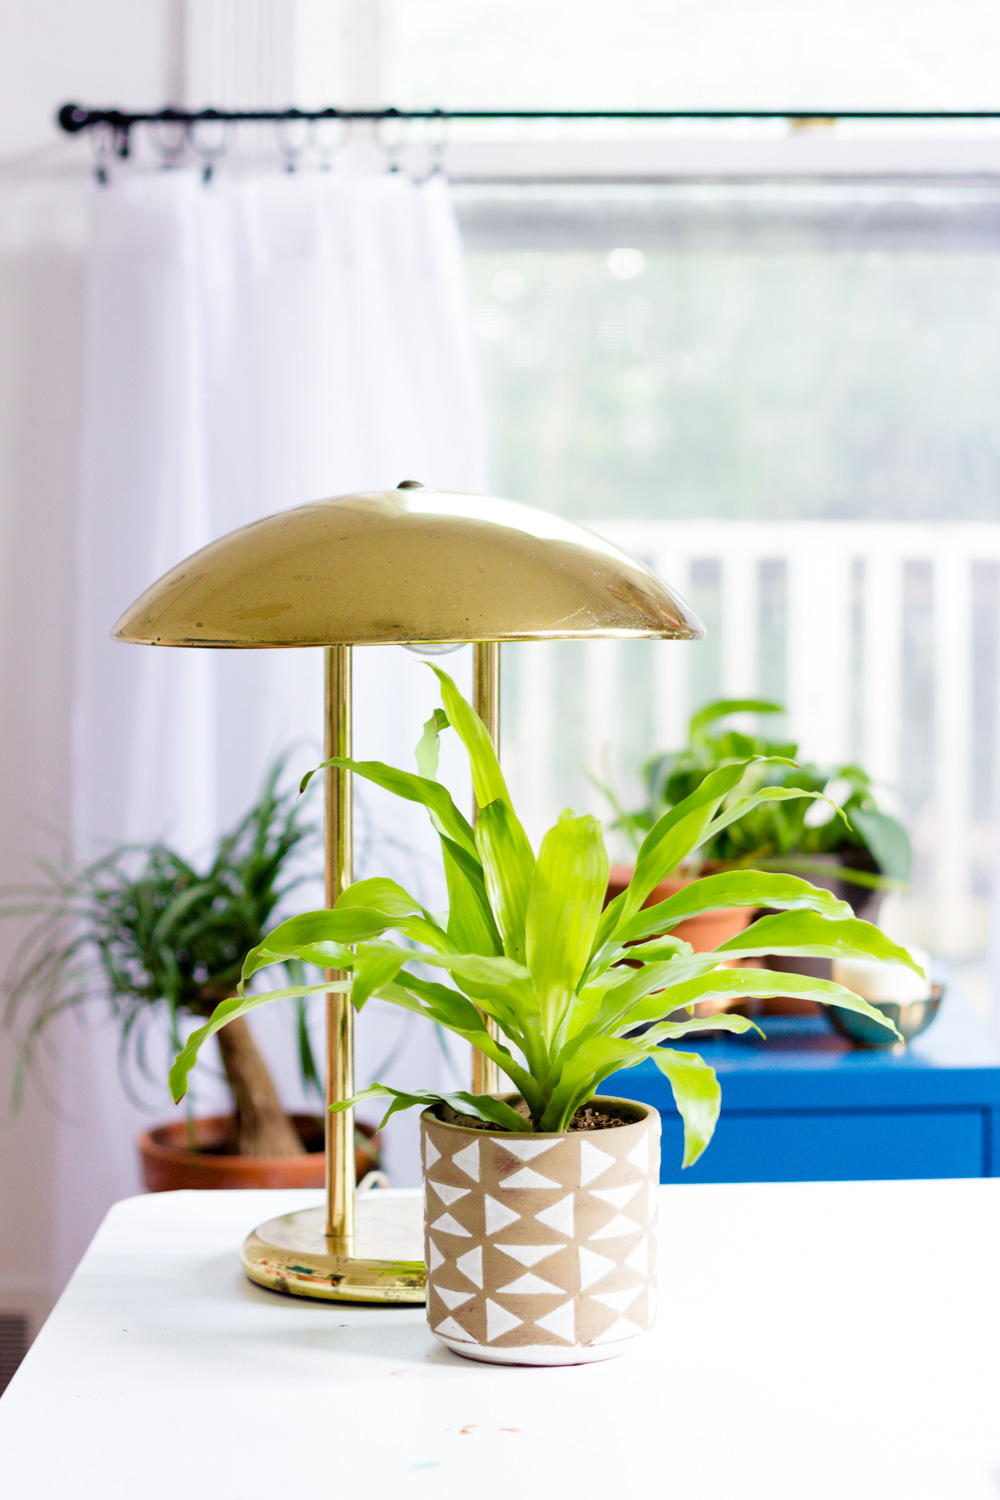 Copy of Vintage brass table lamp and plants